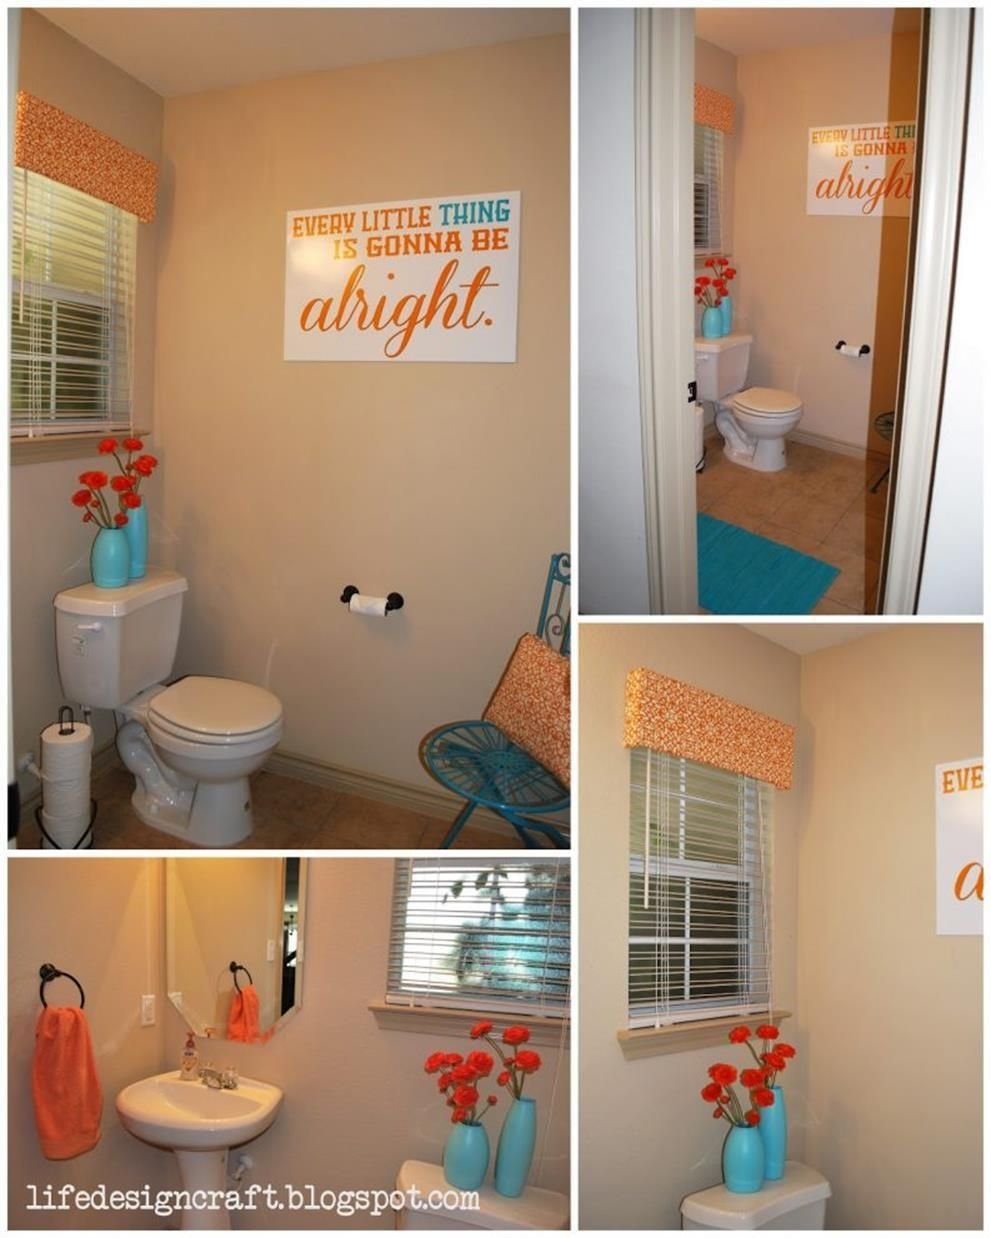 32 Perfect Apartment Bathroom Decorating Ideas On A Budget Bathroomdecorapartment Orange Bathroom Decor Coral Bathroom Decor Orange Bathrooms